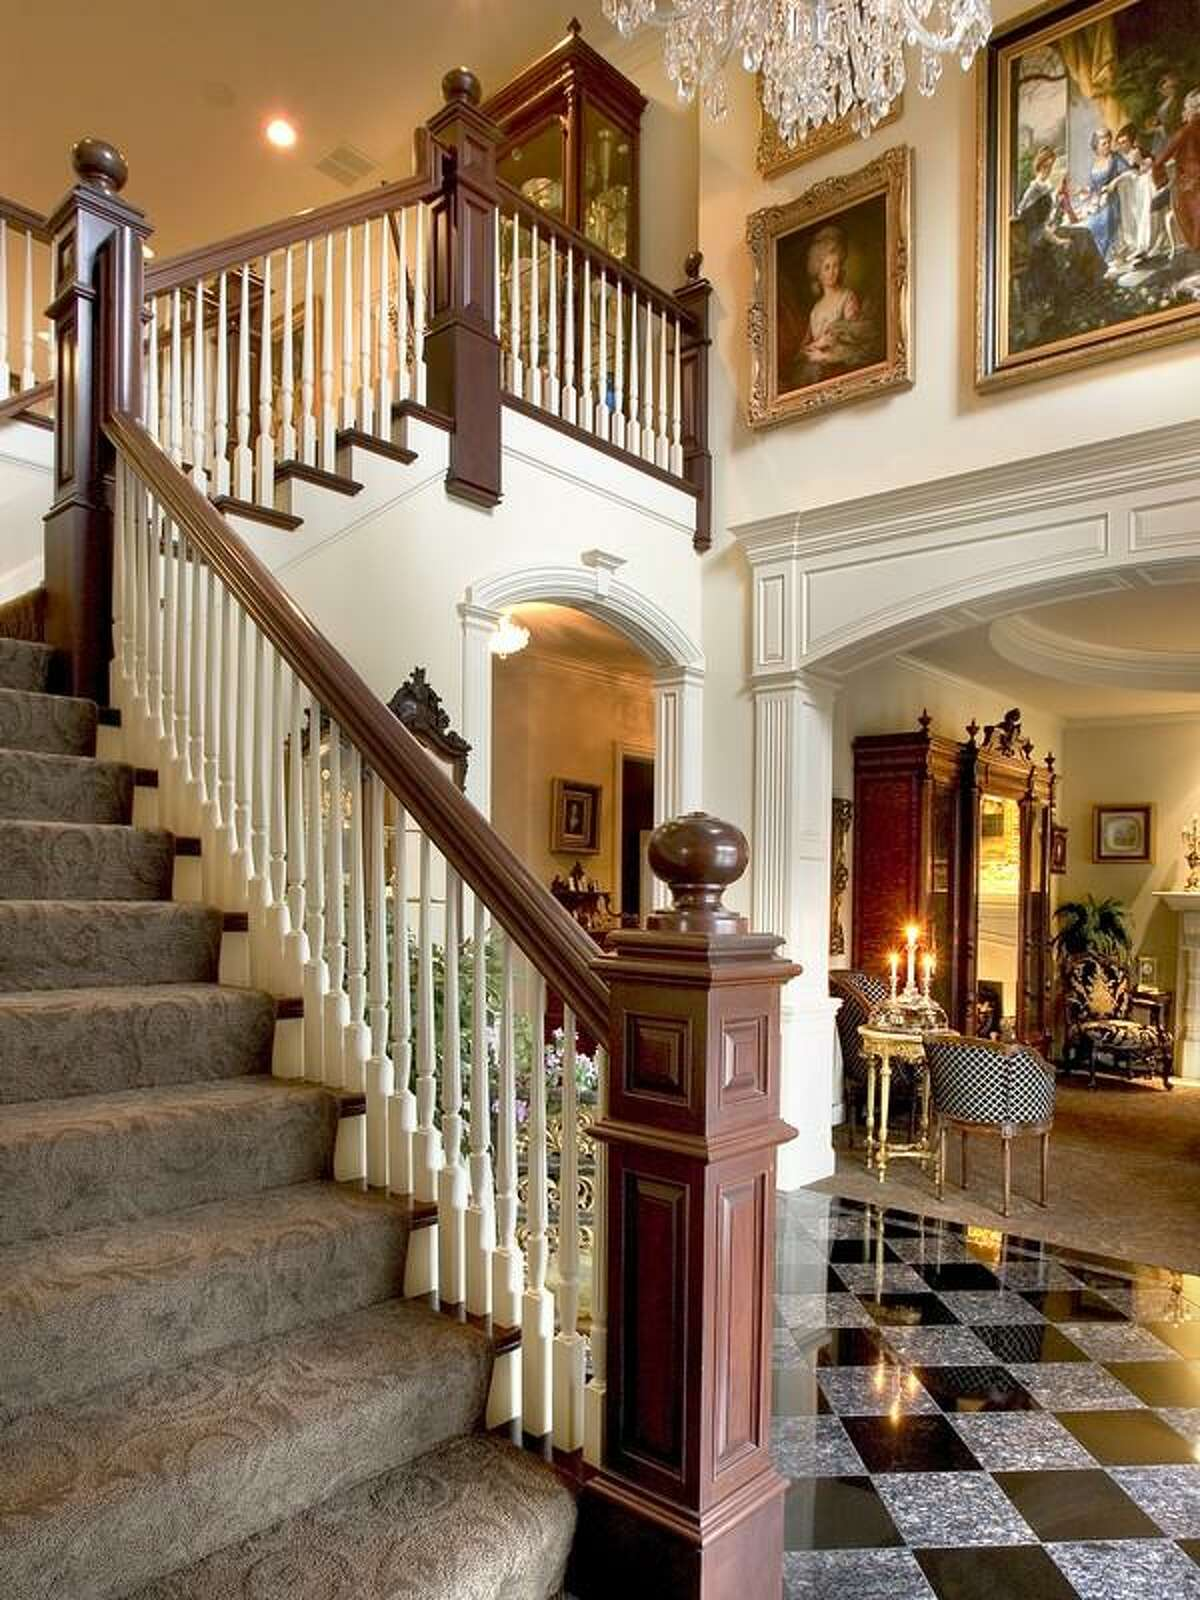 Foyer of 416 289th Place N.E., in Carnation. The 8,522-square-foot house, built in 1997, has five bedrooms, four full bathrooms, two powder rooms, a two-story living room with a floor-to-ceiling stone fireplace, huge chandeliers, marble floors, a theater, a wood-paneled study, French doors, a hot tub and sauna, a wine cellar and a pool with a fountain on a 1.2-acre lot. It's listed for $2.3 million.